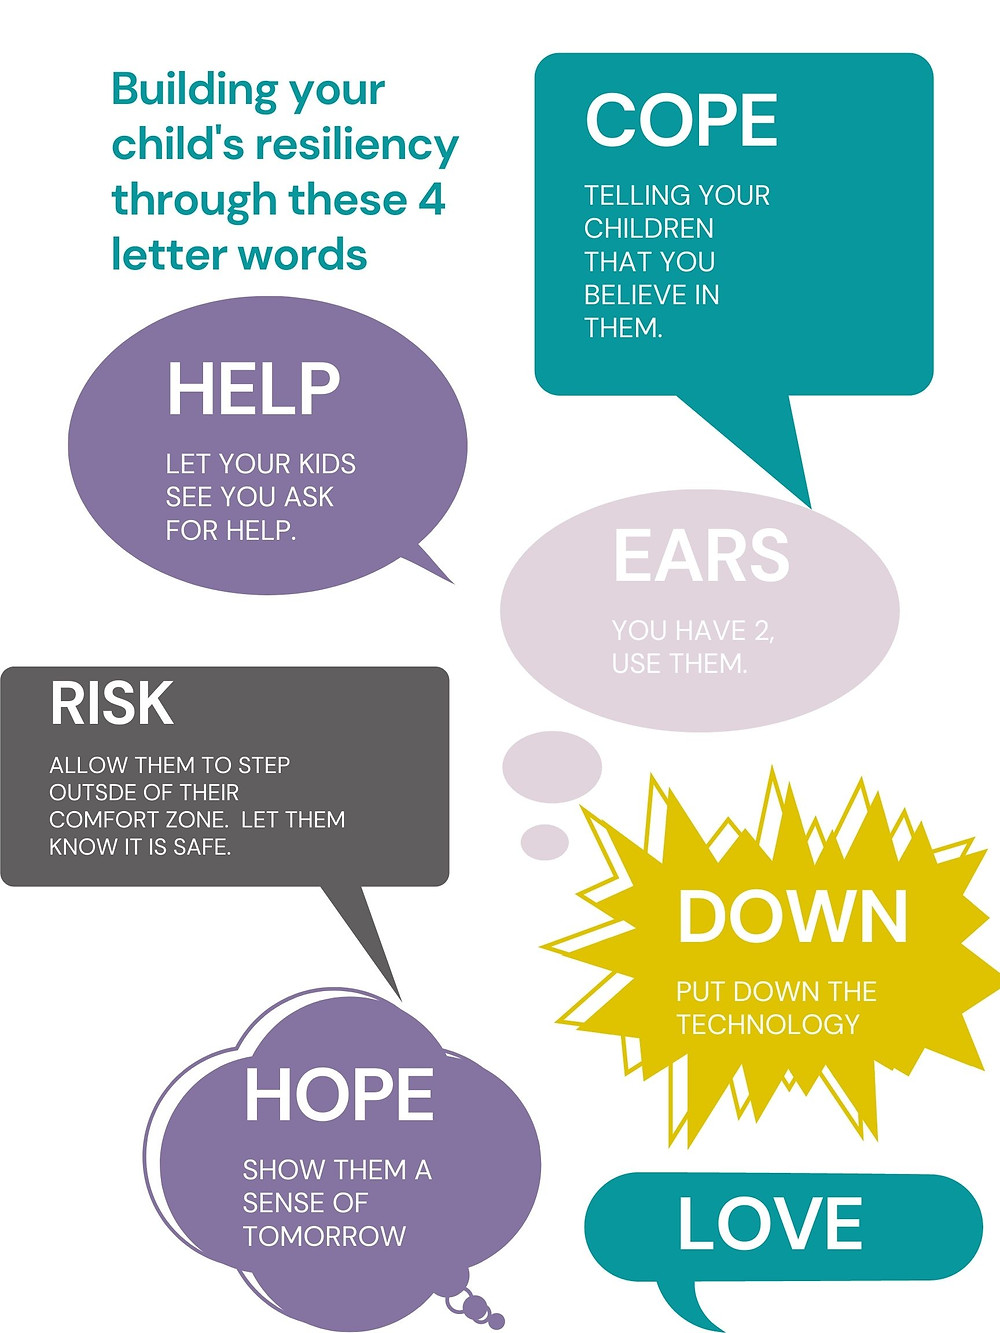 A poster with different shapes and colors of speech bubbles.